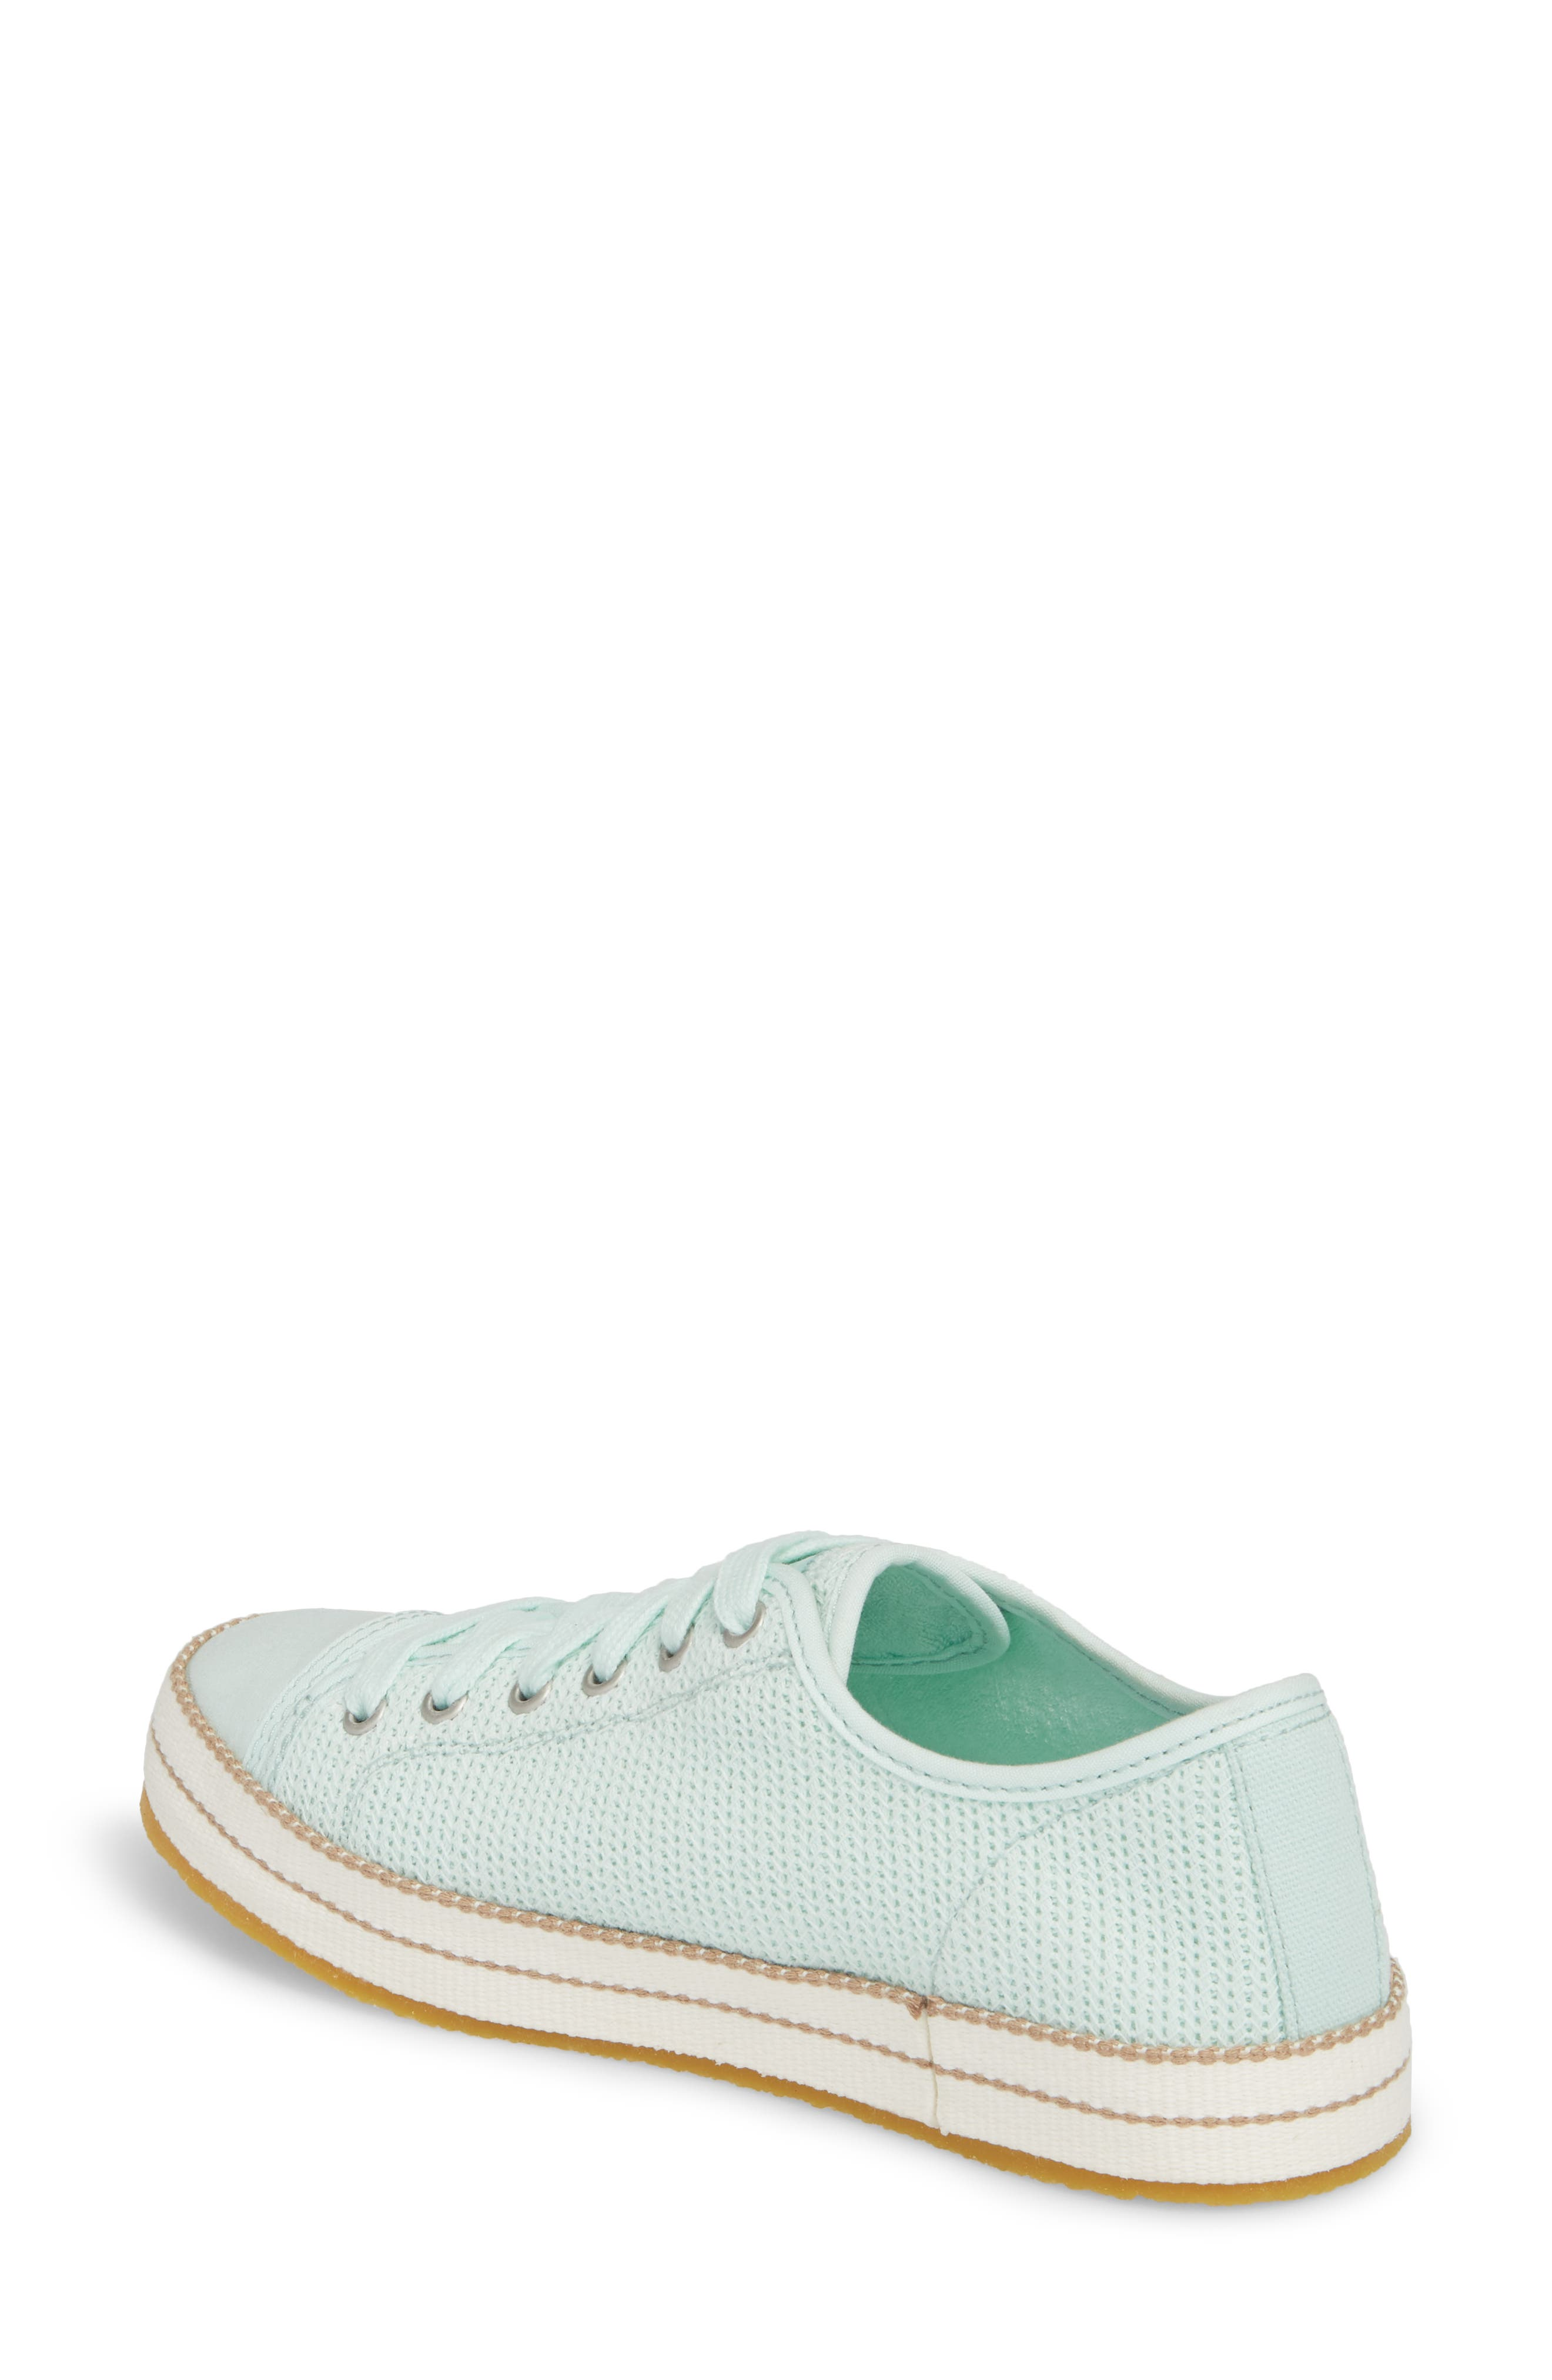 Claudi Sneaker,                             Alternate thumbnail 2, color,                             Aqua